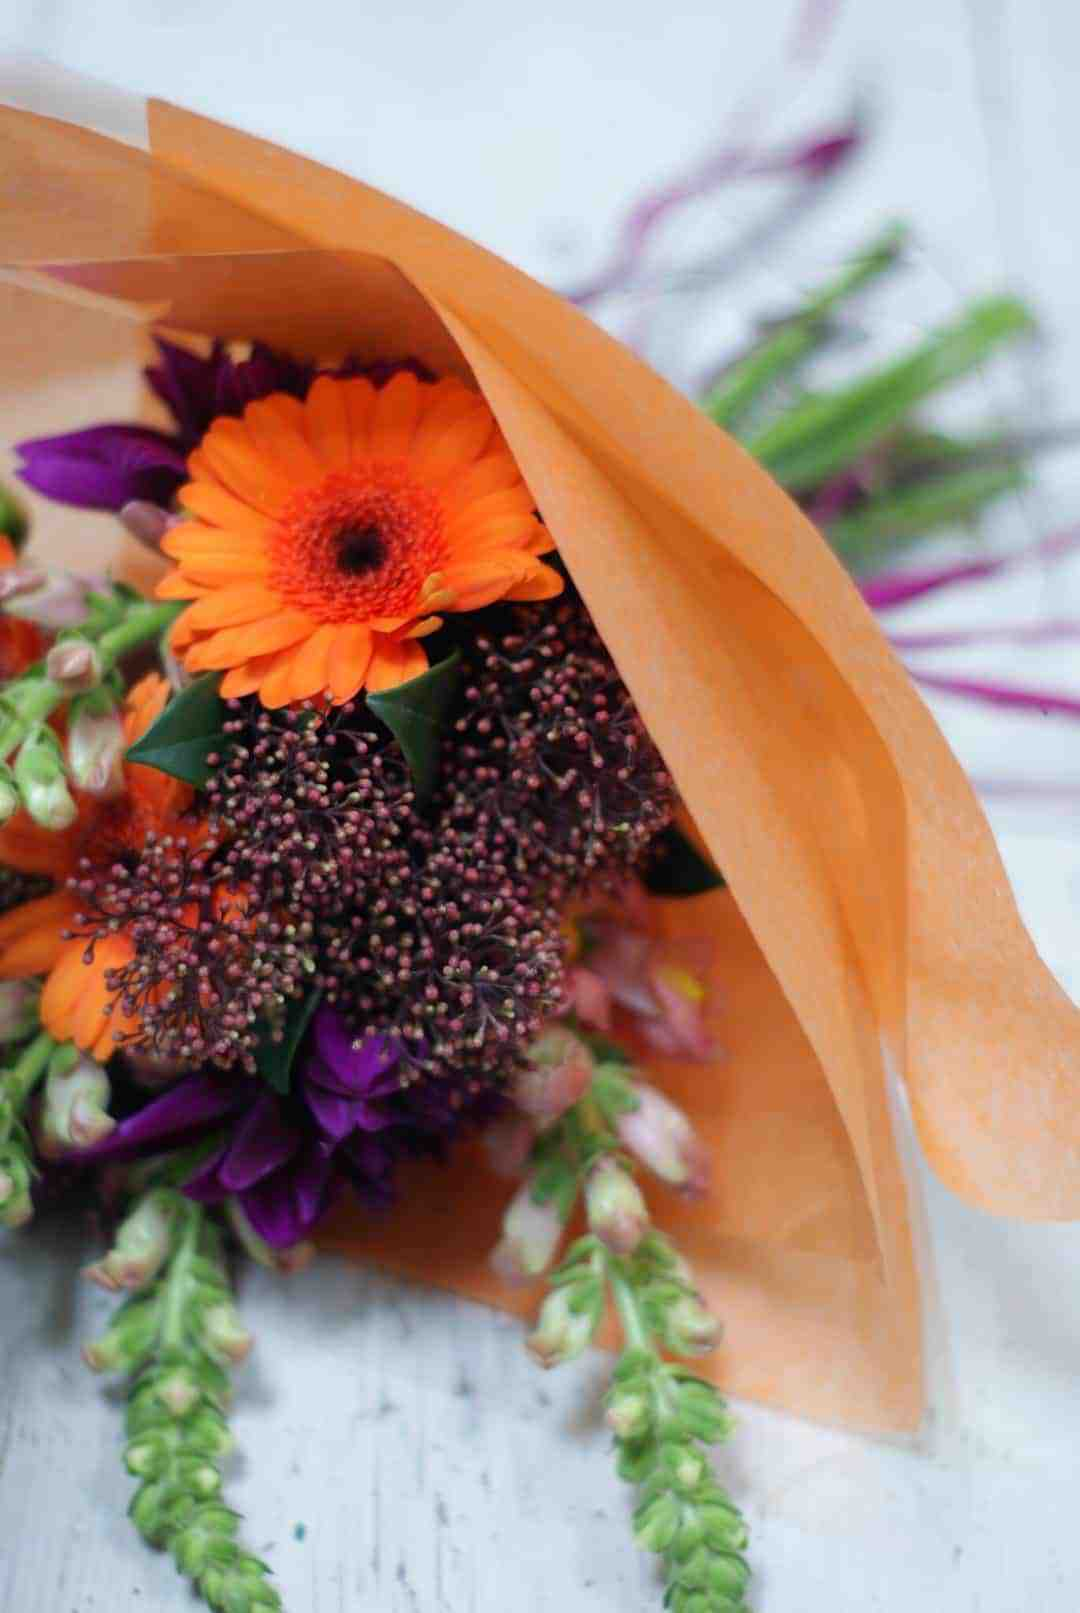 how to arrange stunning autumn flowers and halloween pumpkin decorations: autumn orange and purple flower hand tied bouquet - how to make it